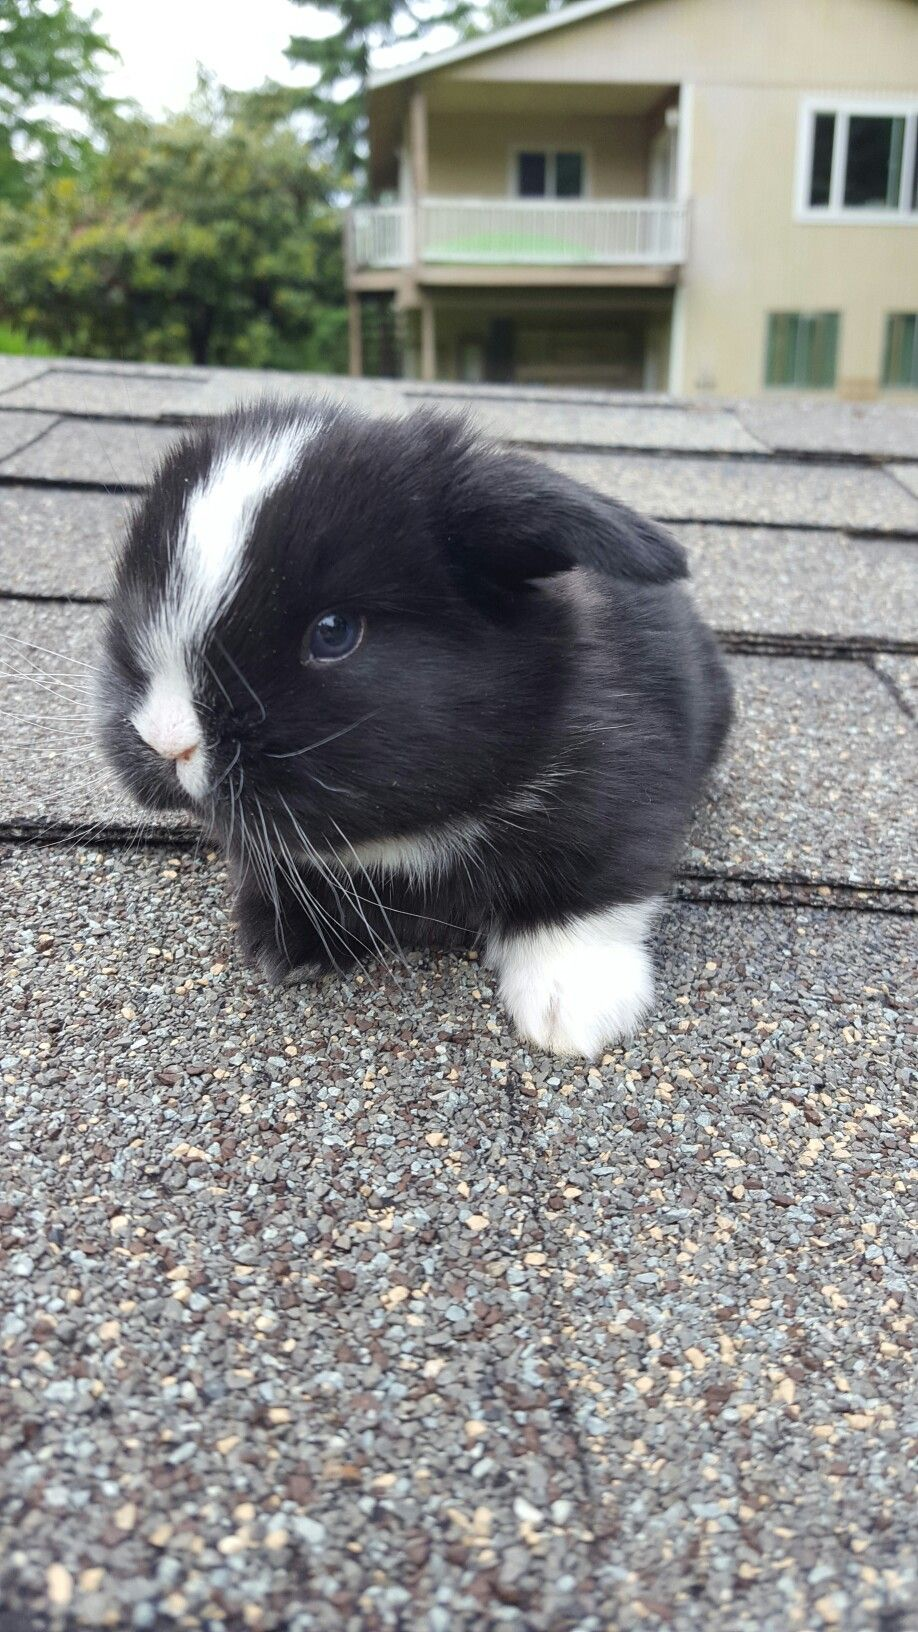 Cheap Bunnies : cheap, bunnies, Black, Vienna, Marked, Holland, Check, Bunnies, Bluecloverrabbitry.weebly.com, Bunny, Pictures,, Animals, Funny,